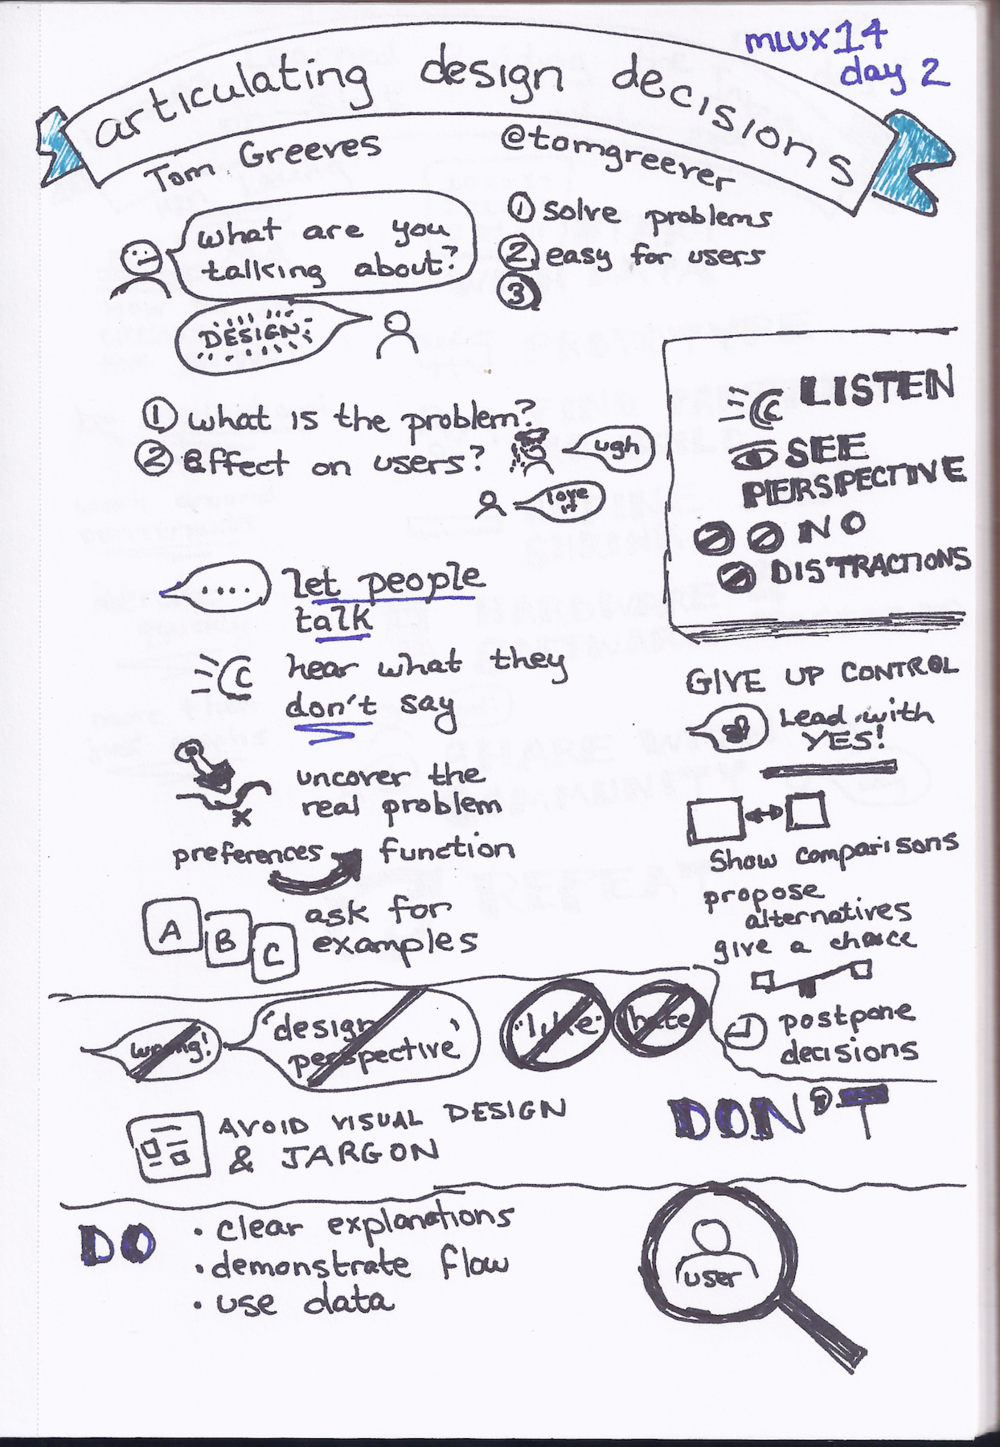 Sketchnotes for Articulating Design Decisions